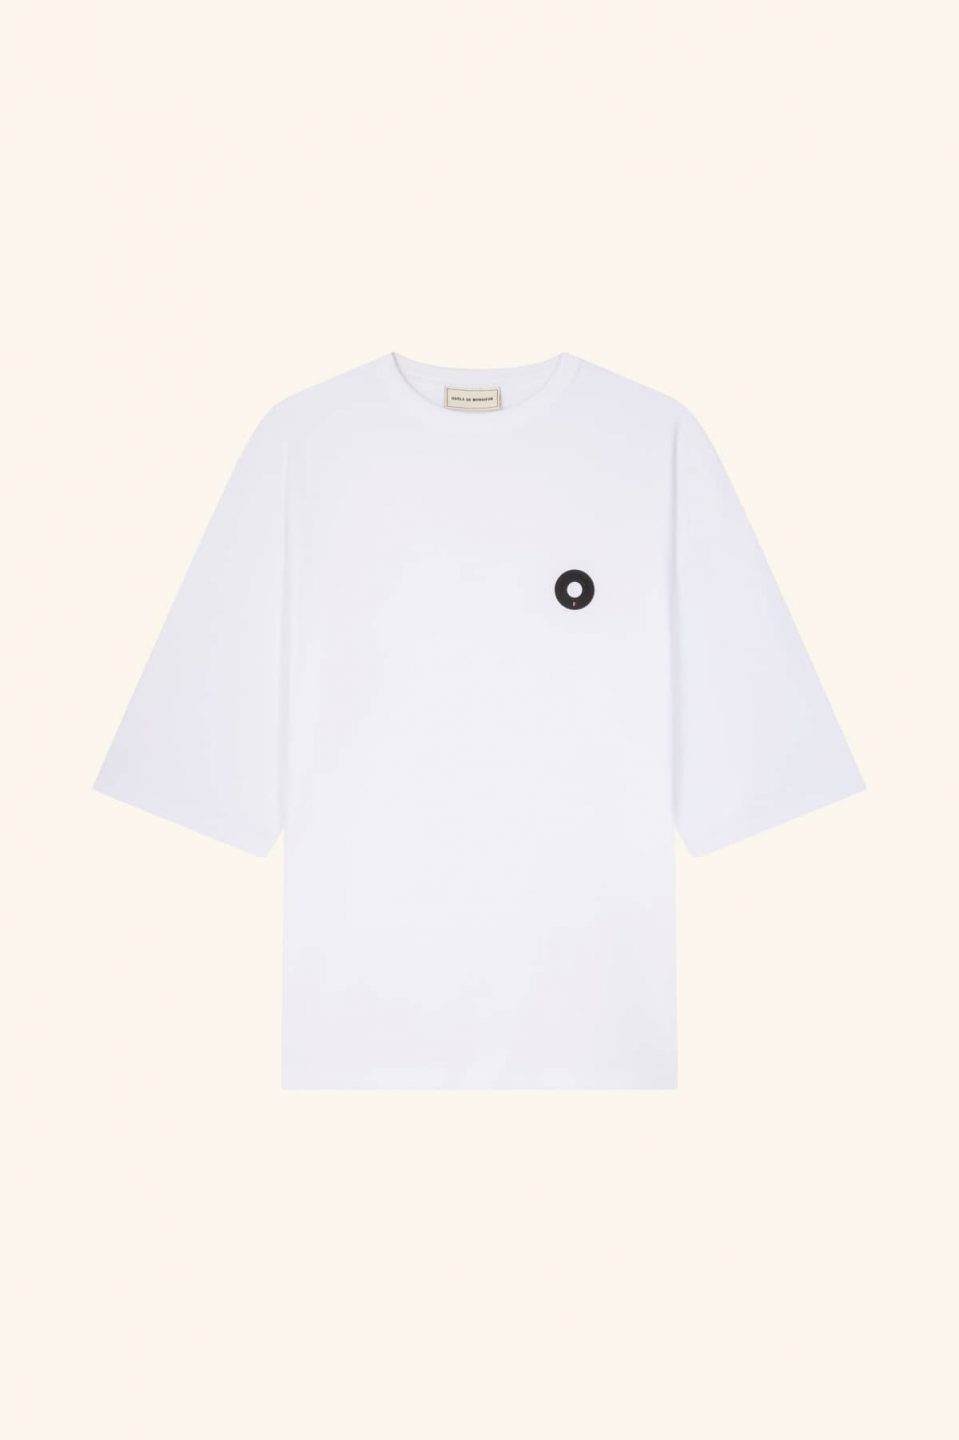 Oversize Patched Tee